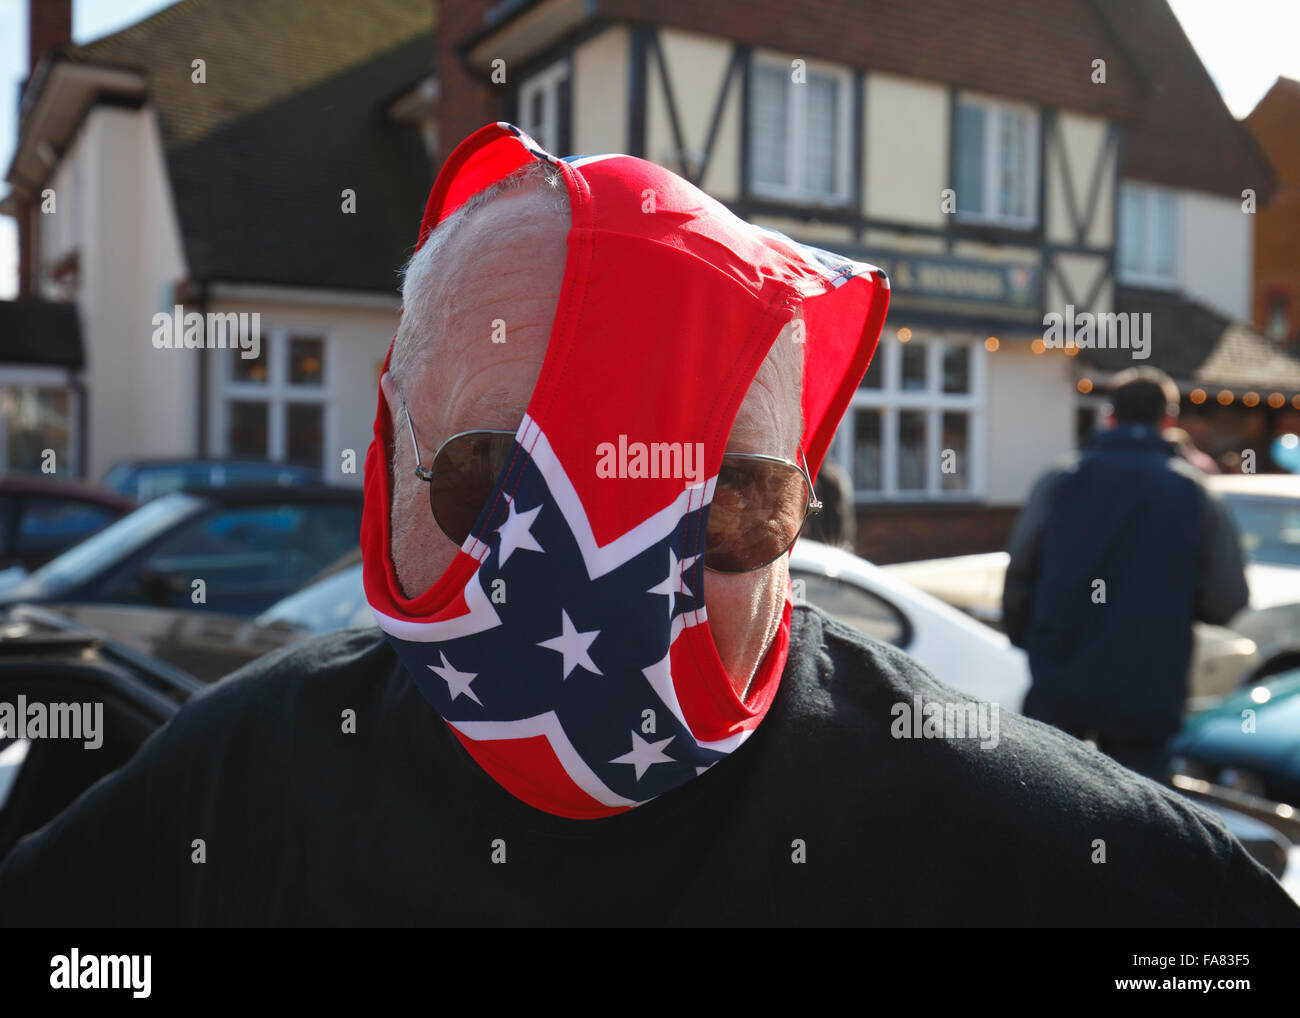 A man with knickers on his head that feature a confederate style flag design. - Stock Image